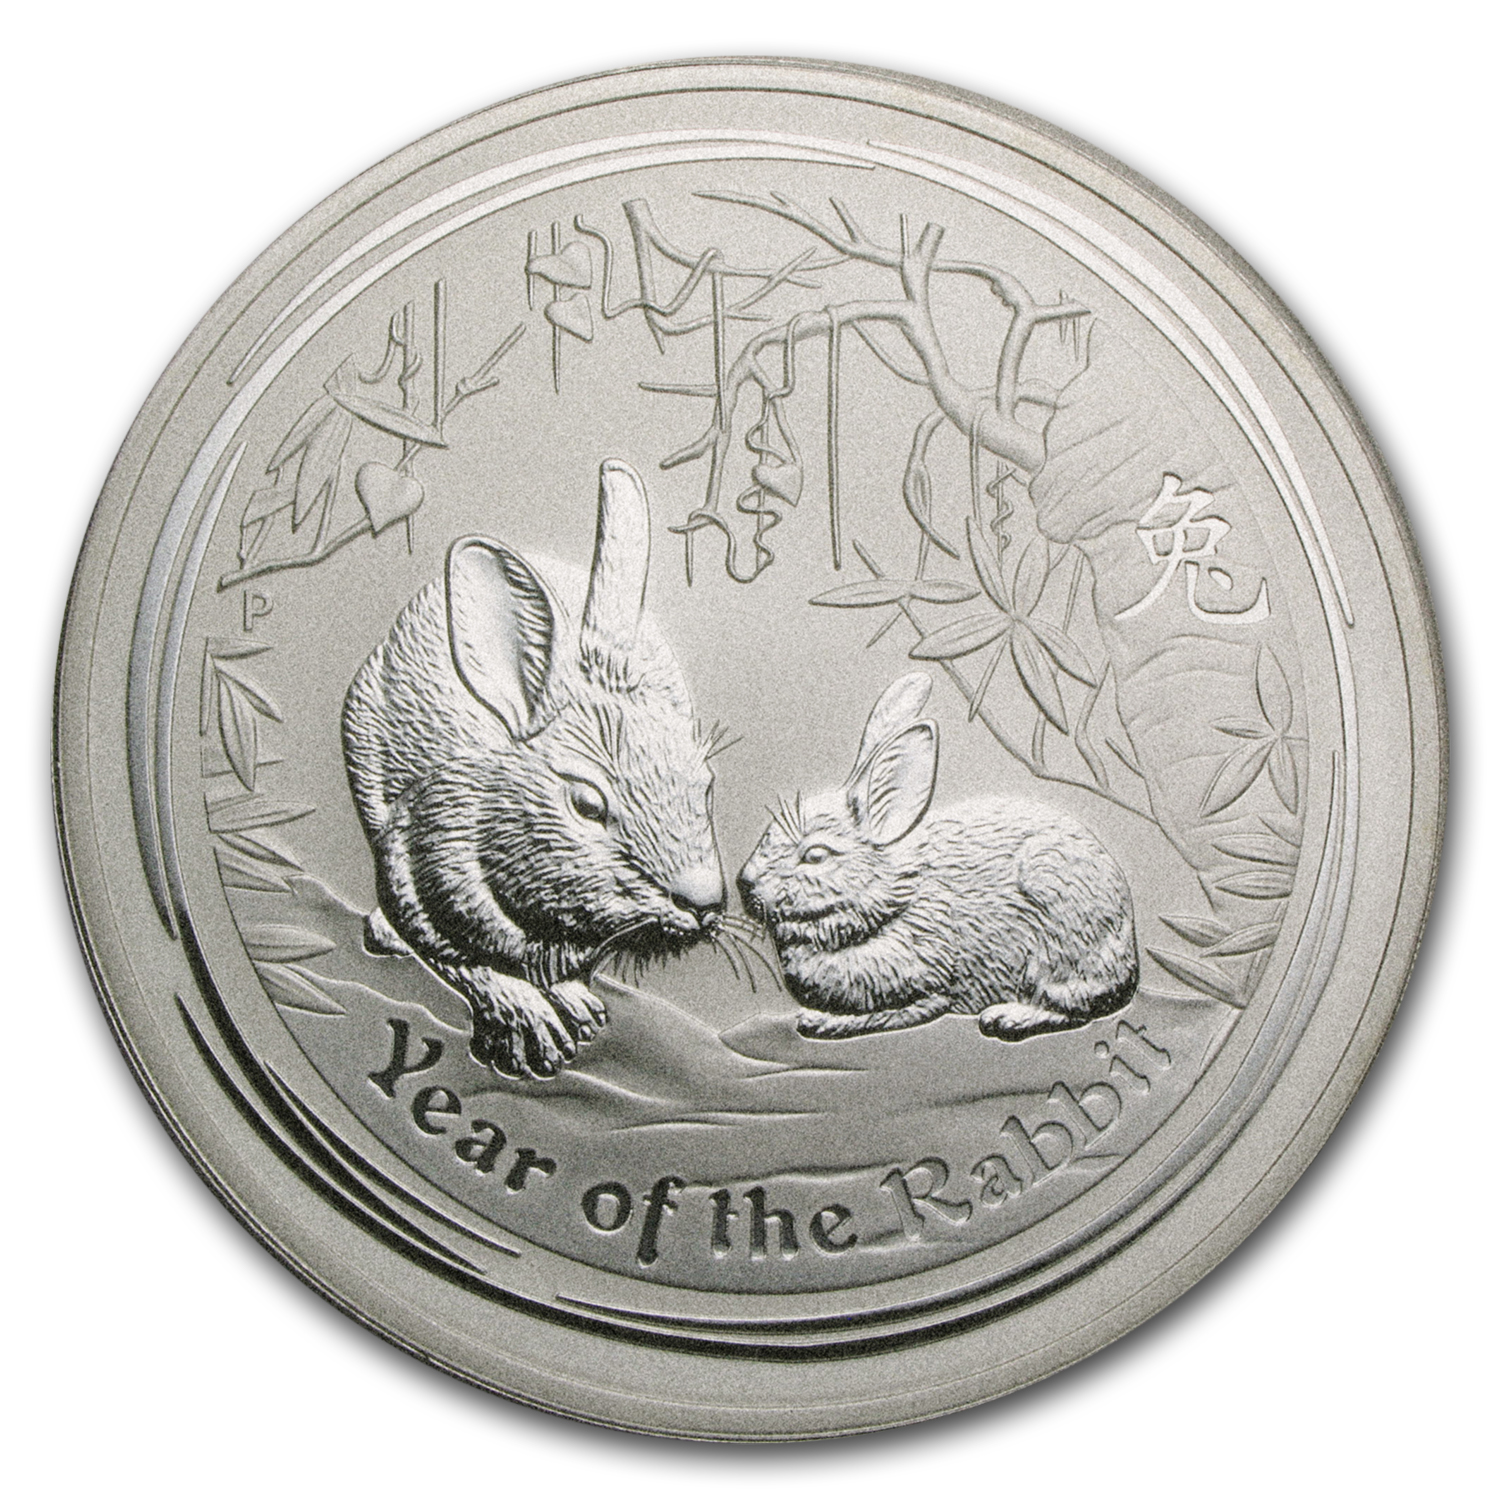 2011 Australia 10 kilo Silver Year of the Rabbit BU (321.5 oz)